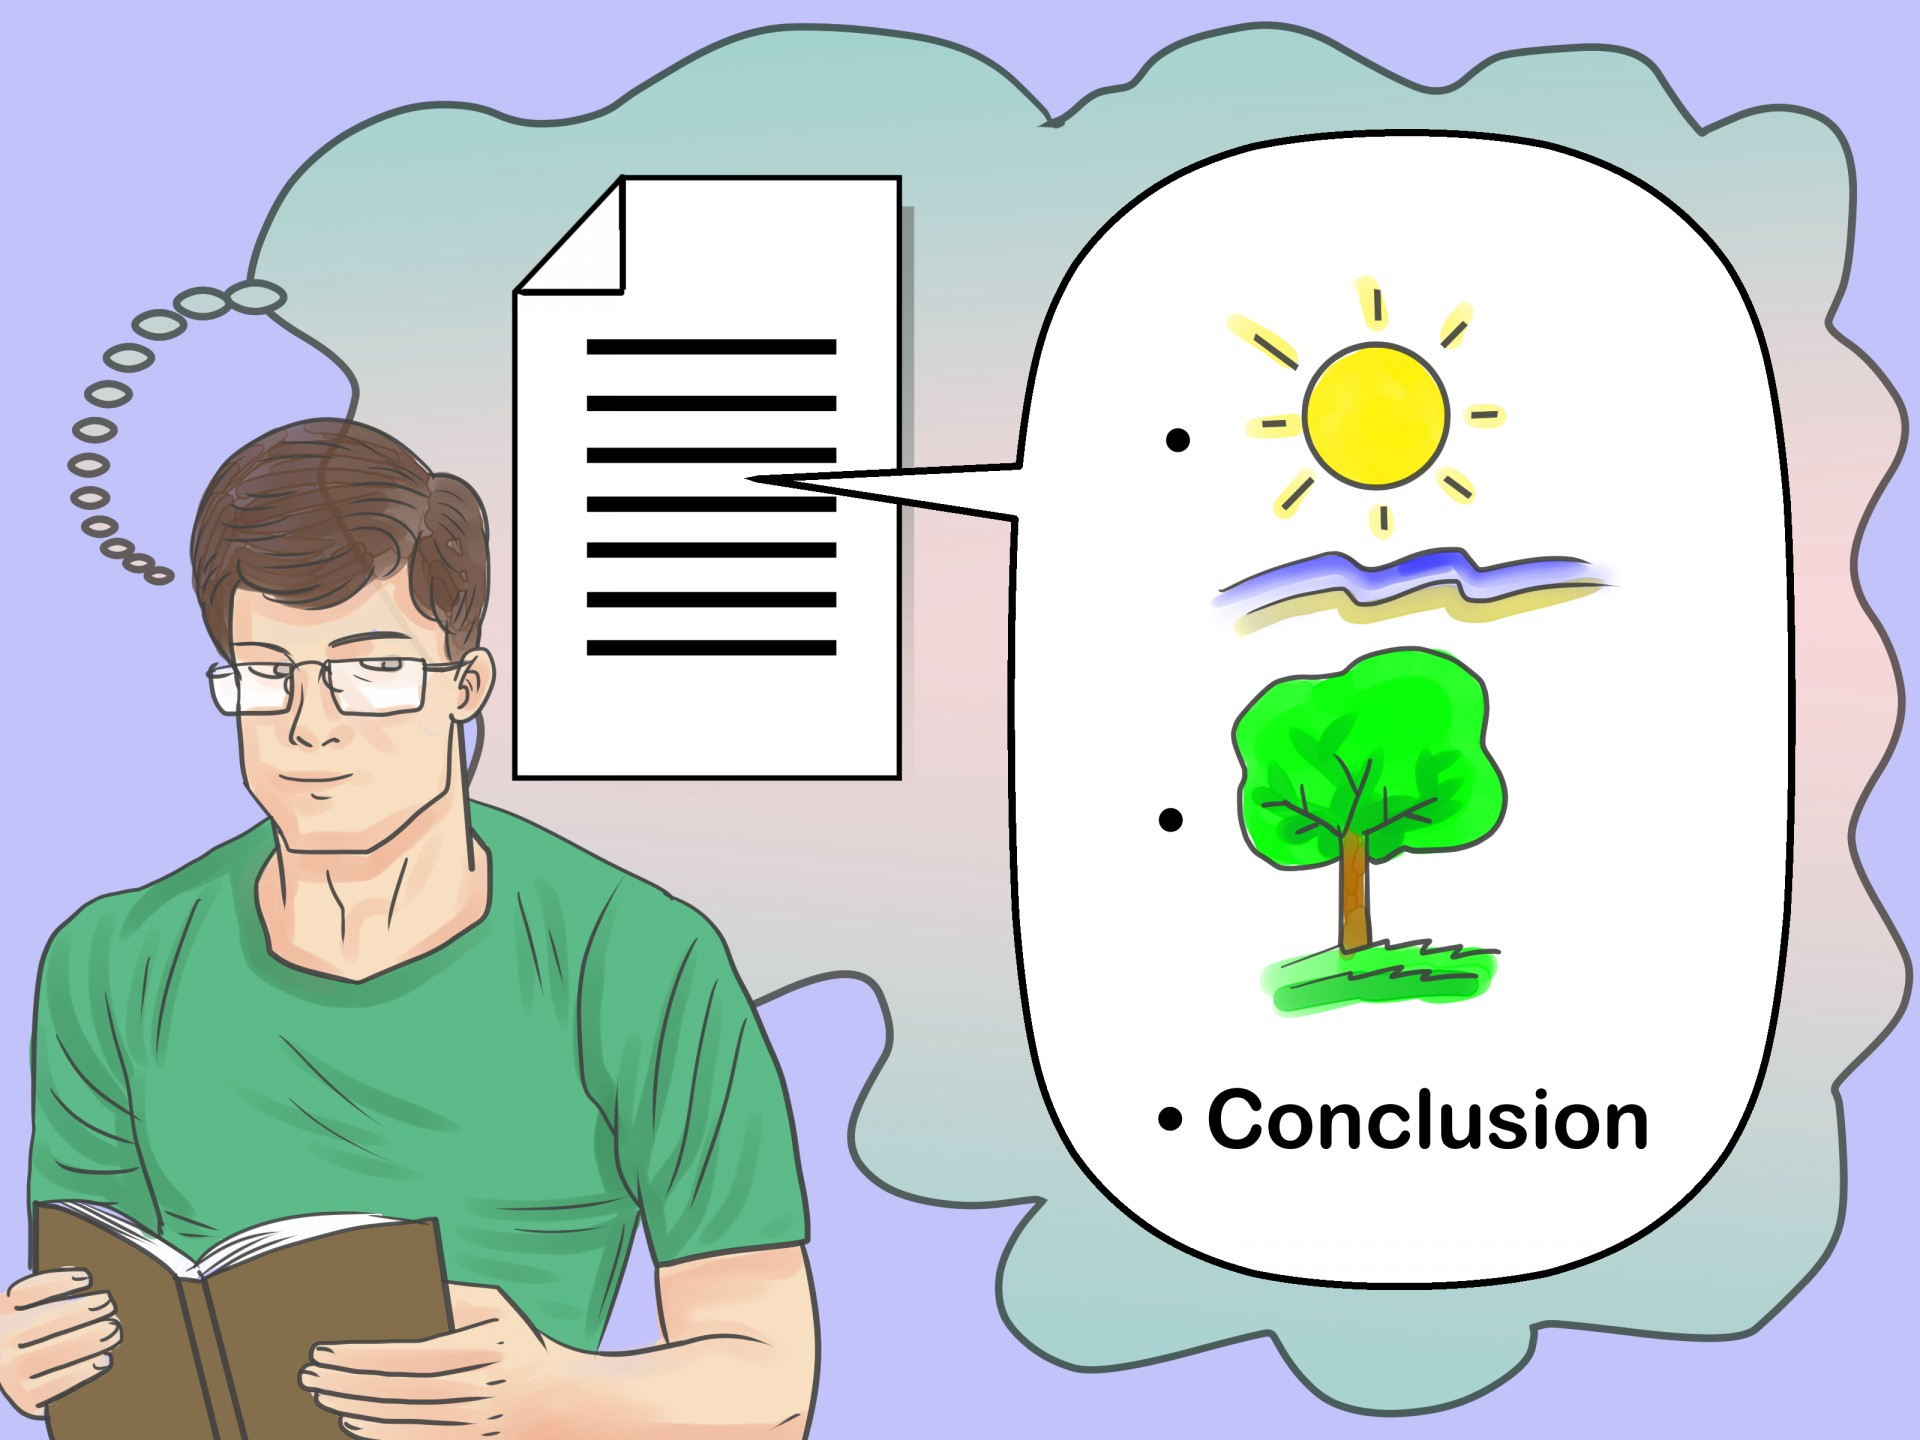 011 Comparing And Contrasting Essay Example Write Compare Contrast Step Version Unique Comparison Sample Pdf Structure University Topics On Health 1920